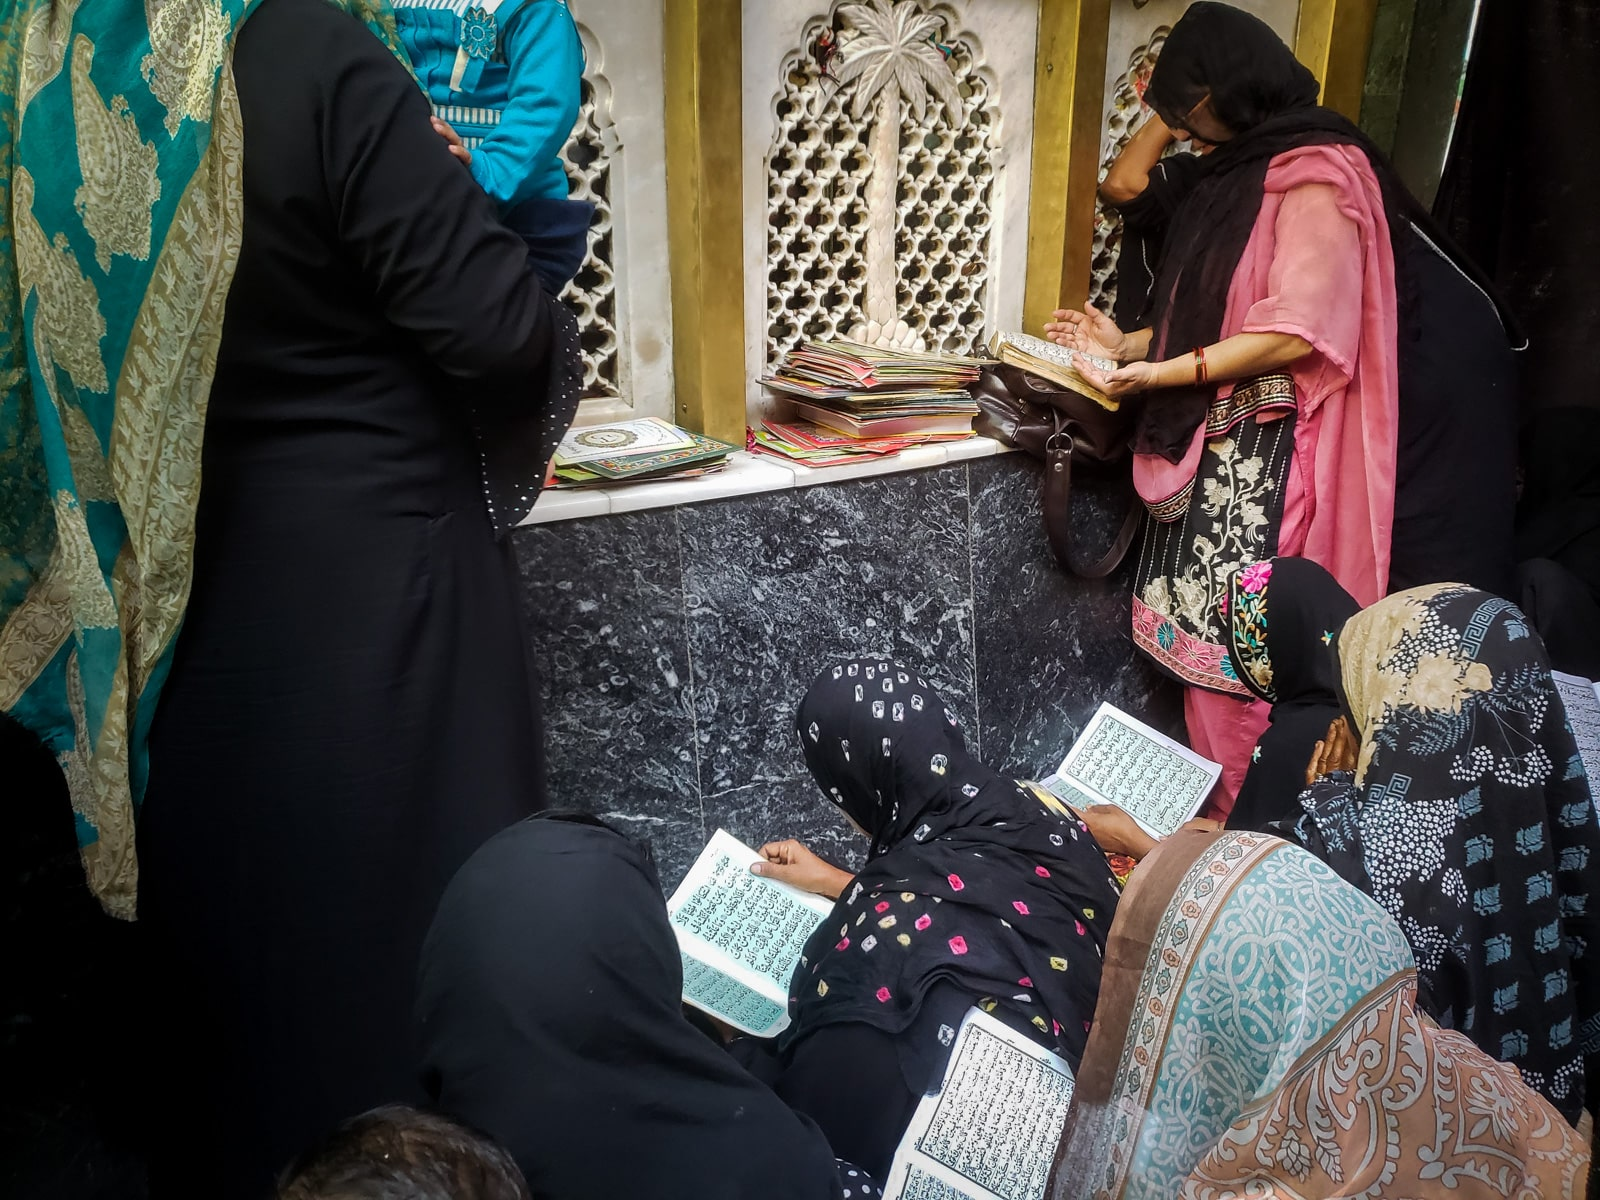 Interesting things to do in Lahore, Pakistan - Local women reading the Quran and praying at the shrine of Bibi Pak Daman